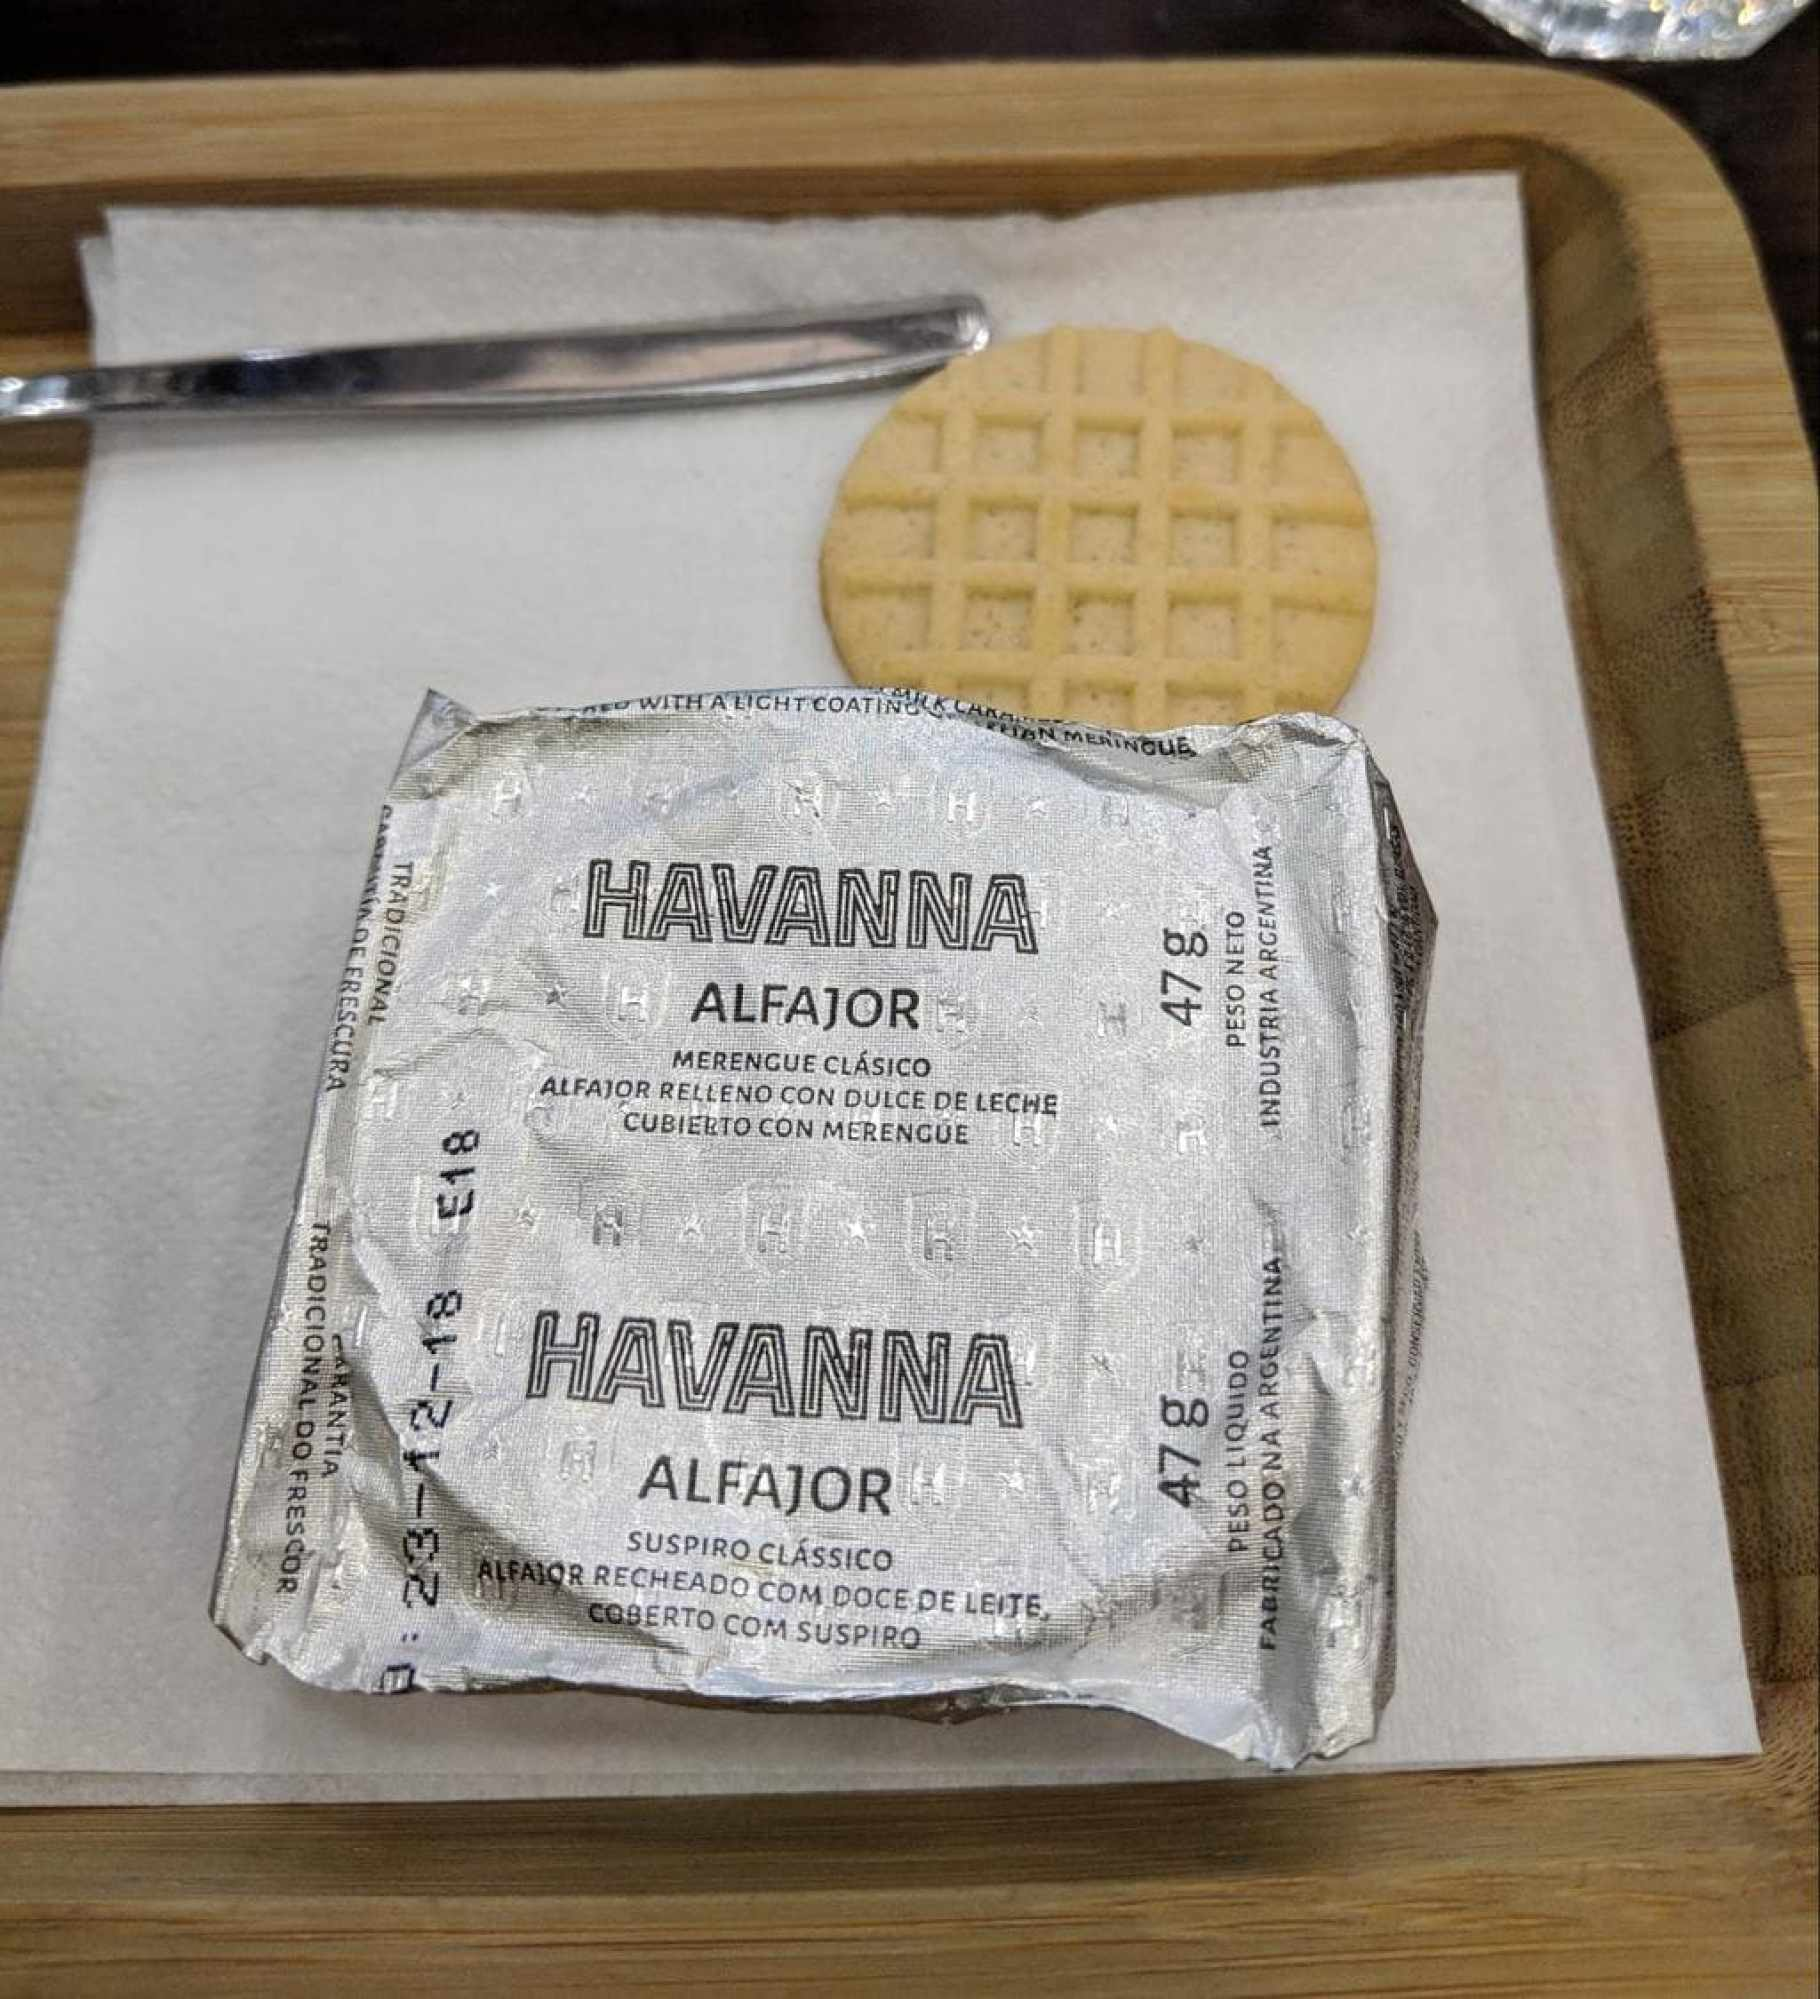 Individually wrapped alfajor from Havanna